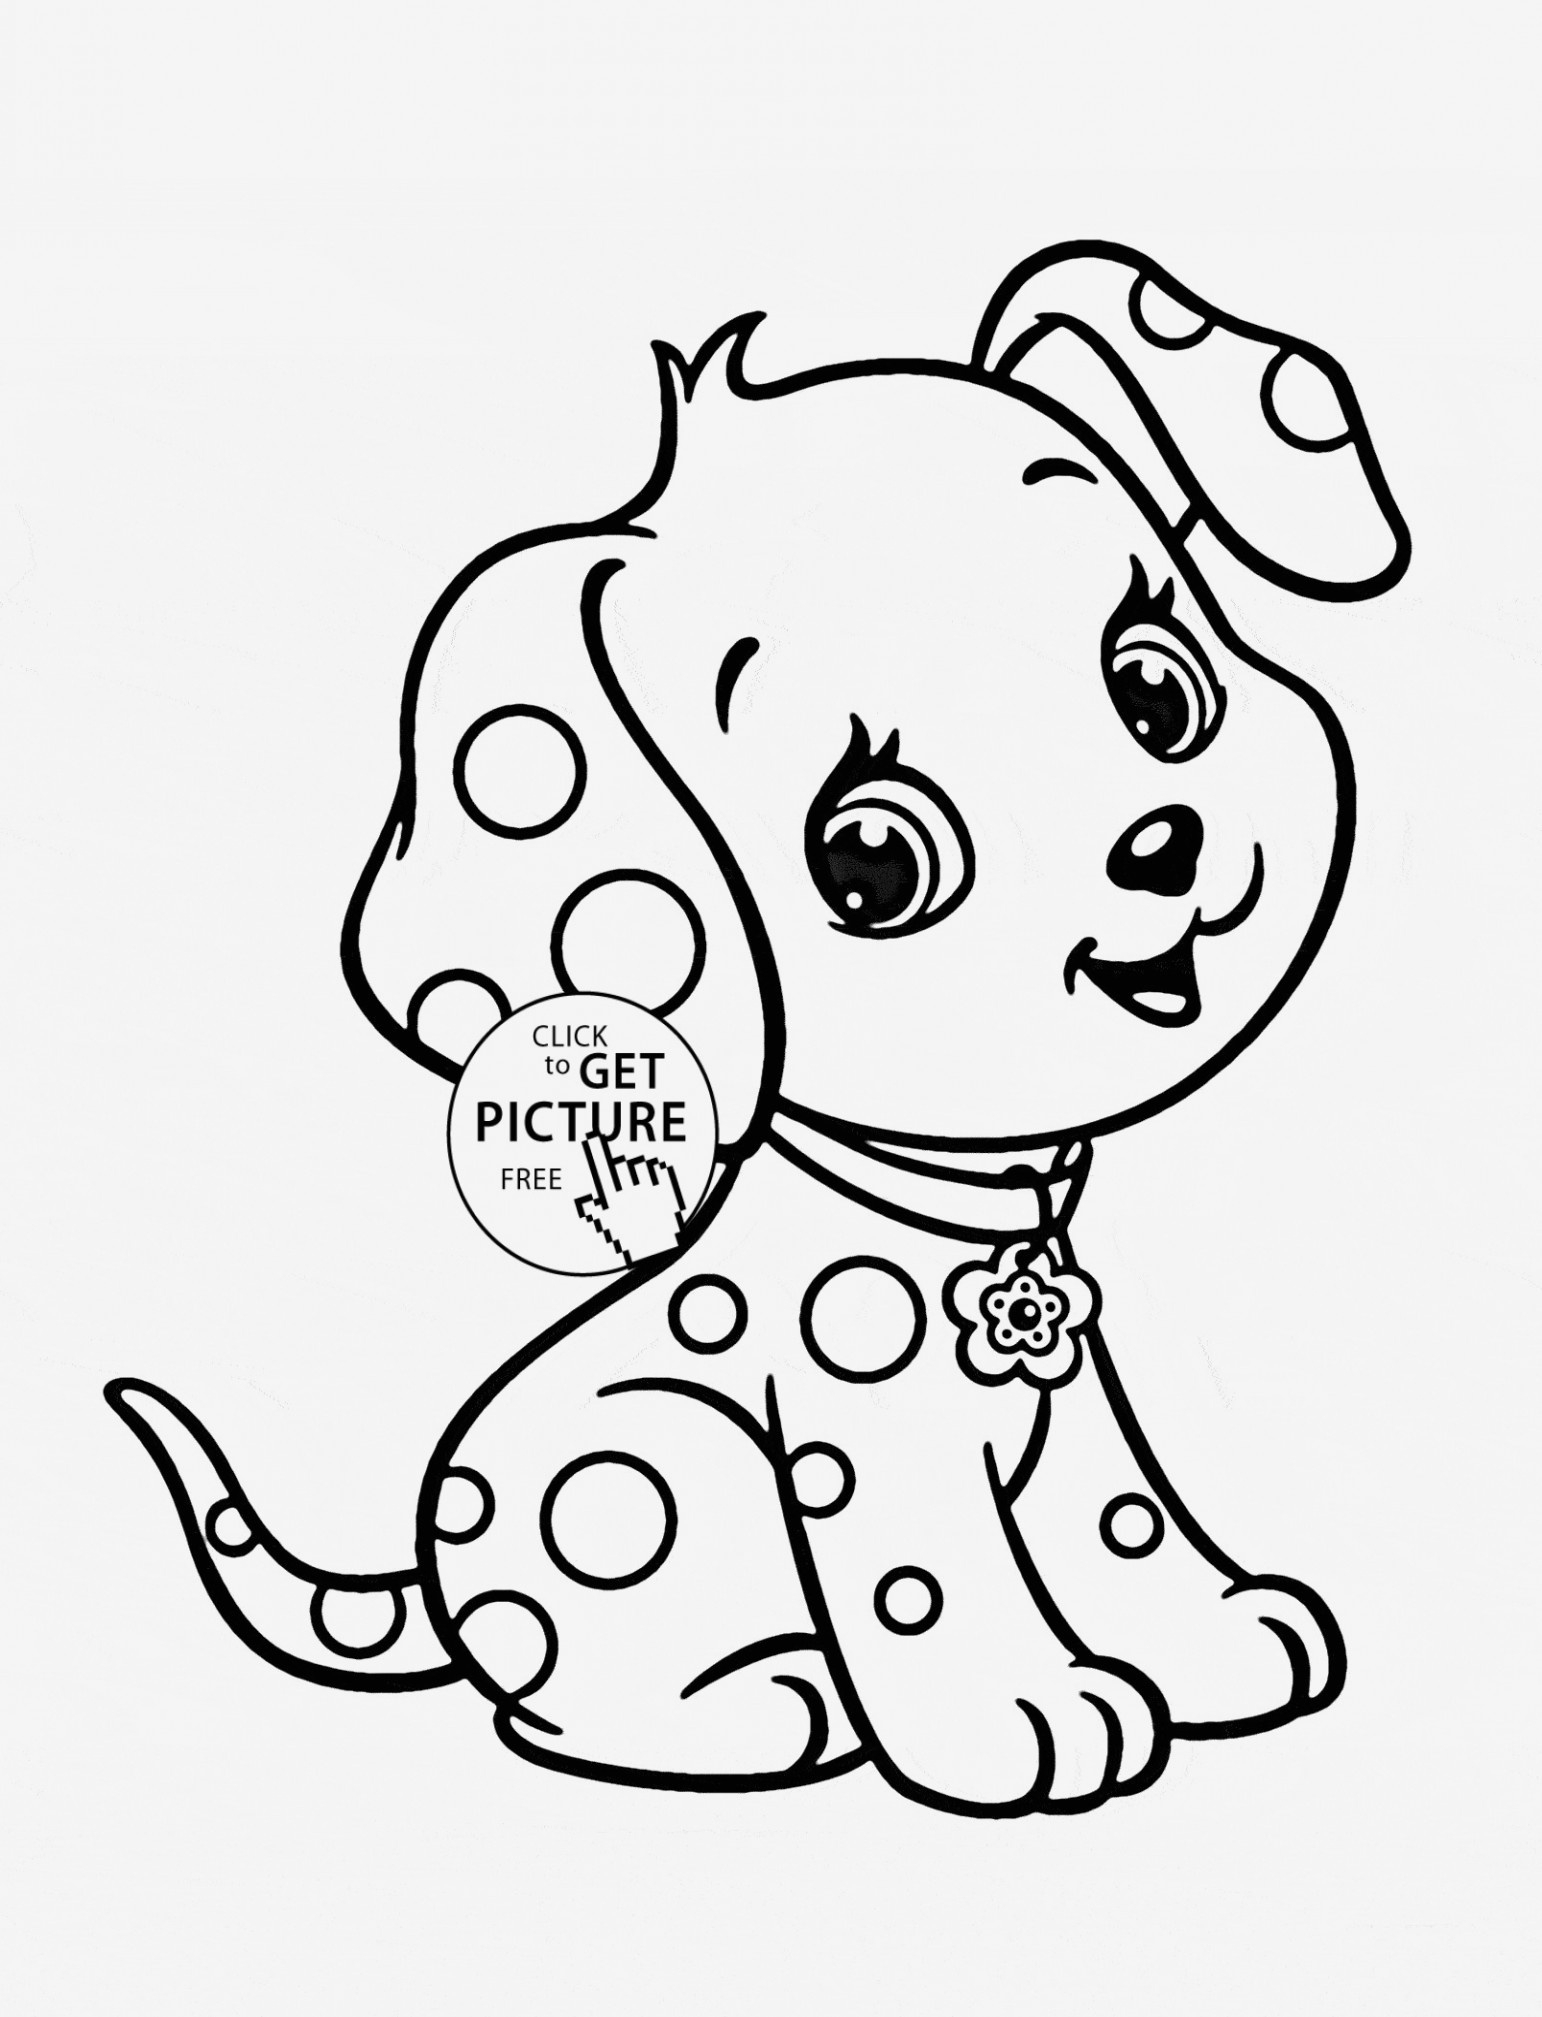 21 Amazing Picture Of Barbie Coloring Pages Entitlementtraprhentitlementtrap: Coloring Pages Of Barbie Easy At Baymontmadison.com